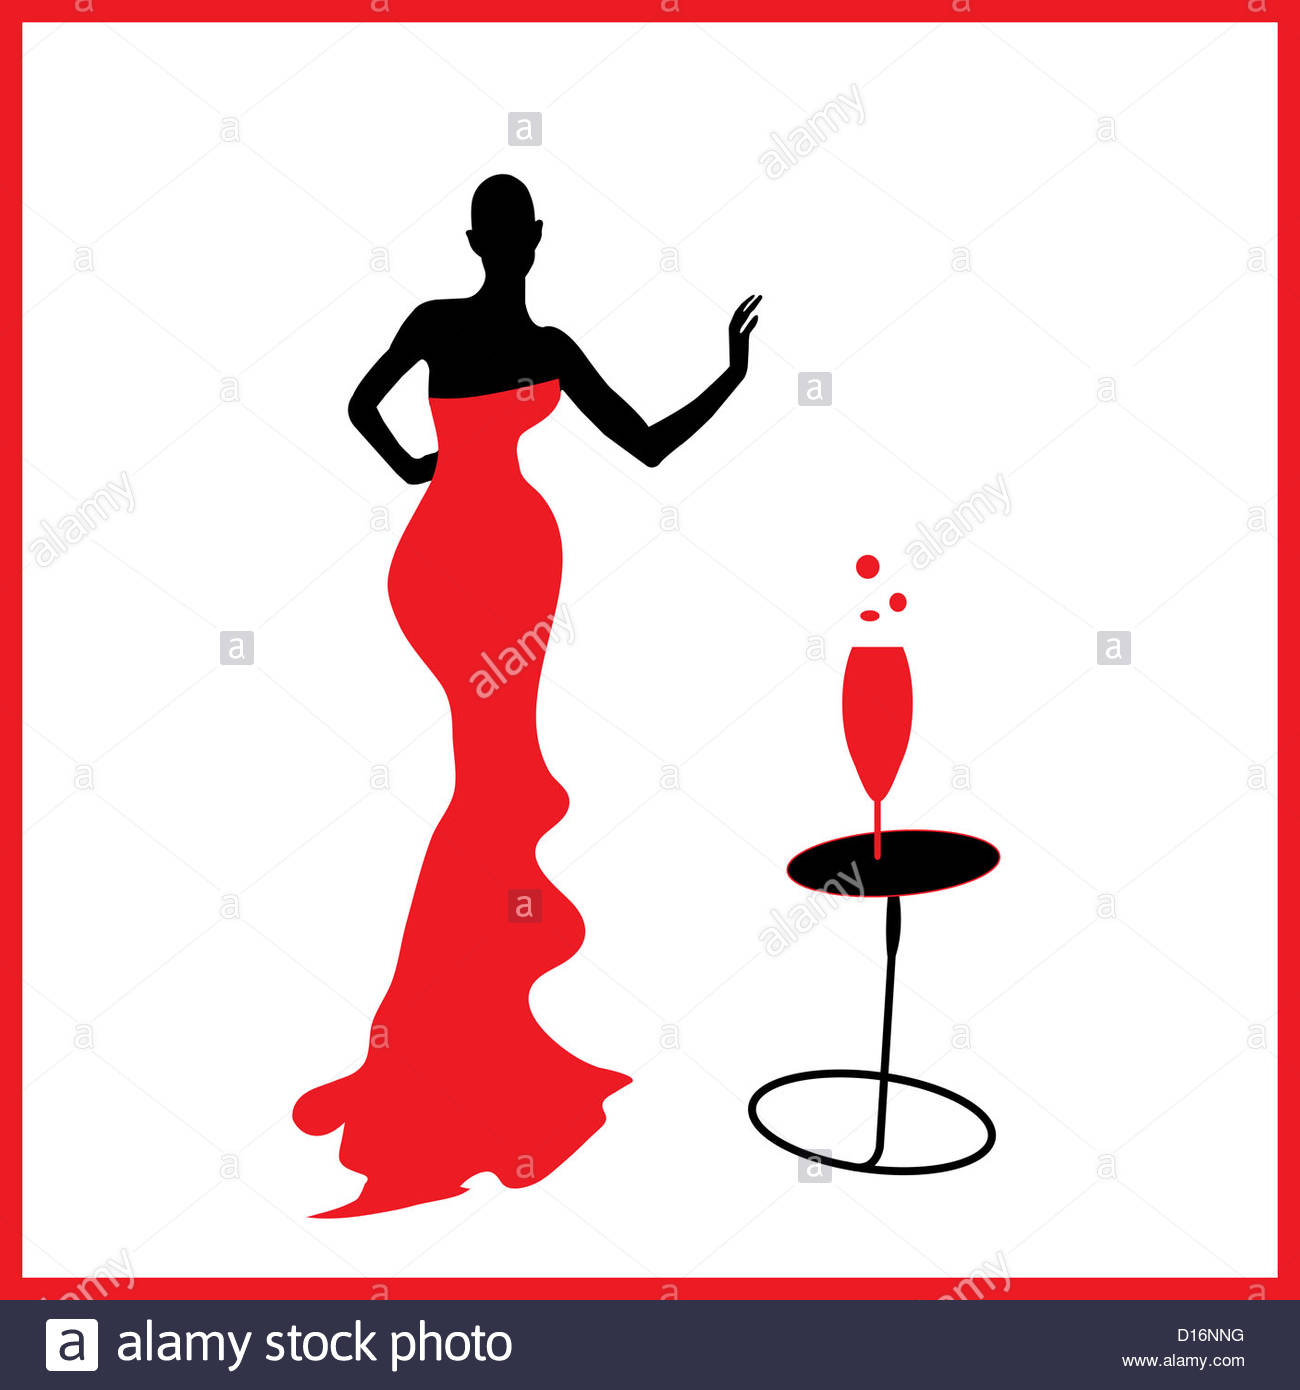 1300x1390 Abstraction Woman Silhouette Black And Red Glass Stock Photo